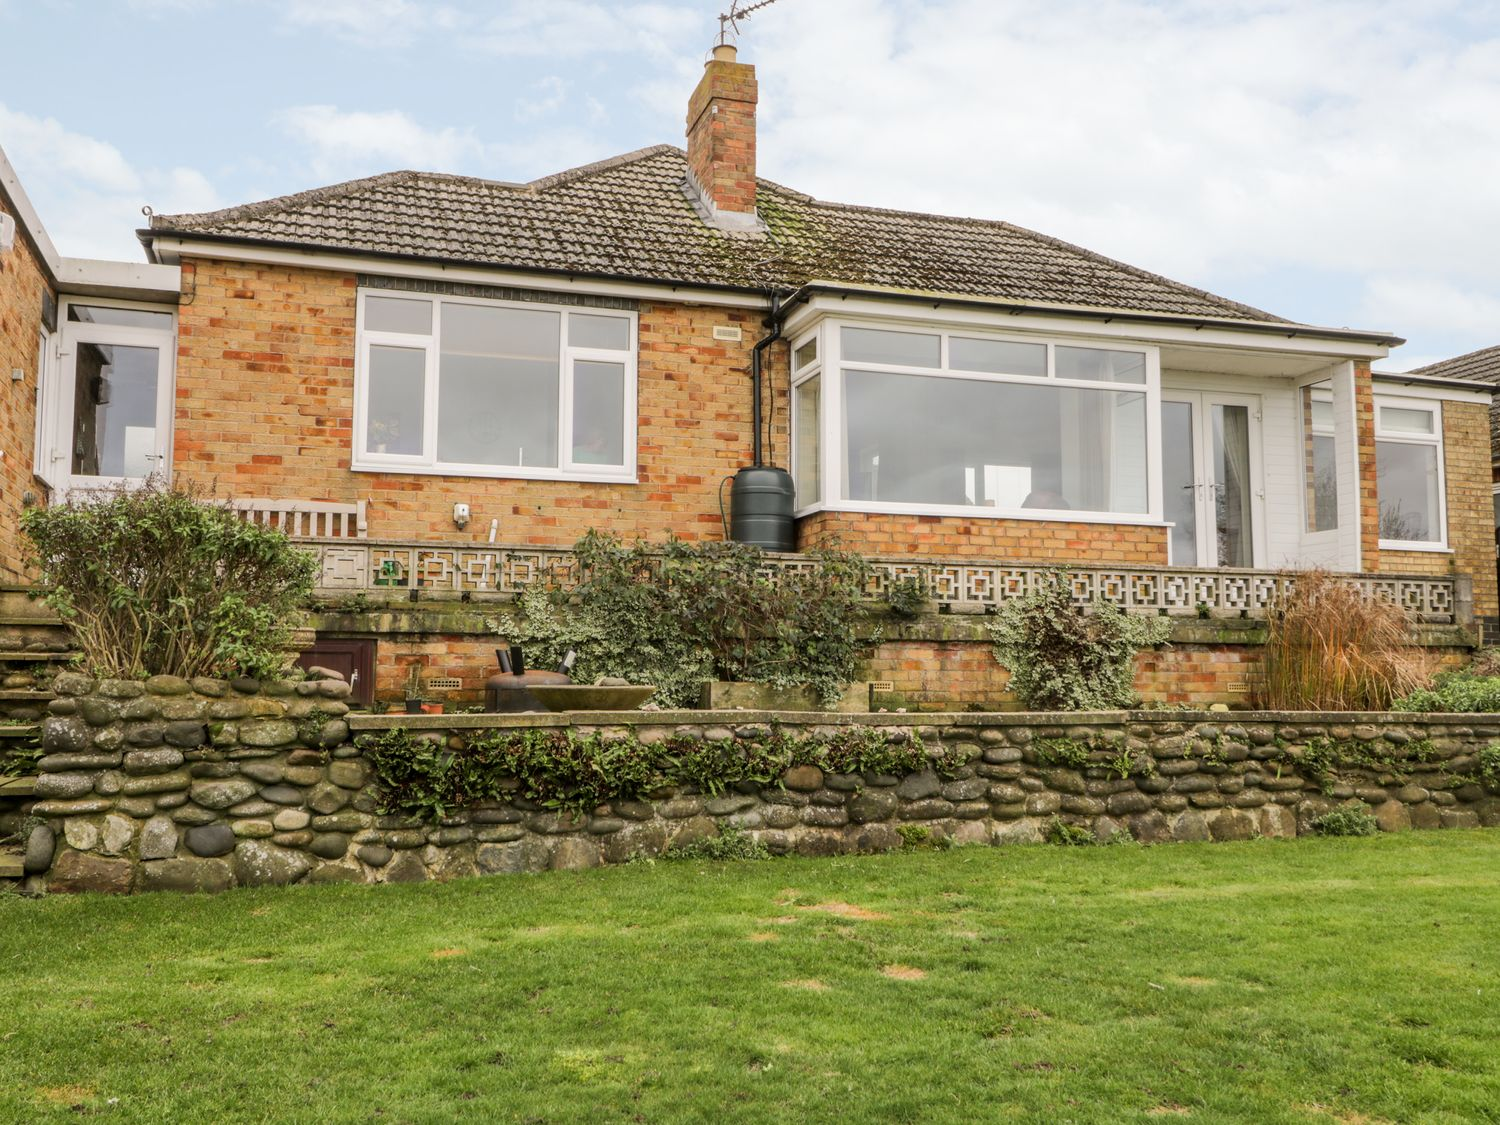 8 Mere View Avenue - Whitby & North Yorkshire - 1016901 - photo 1